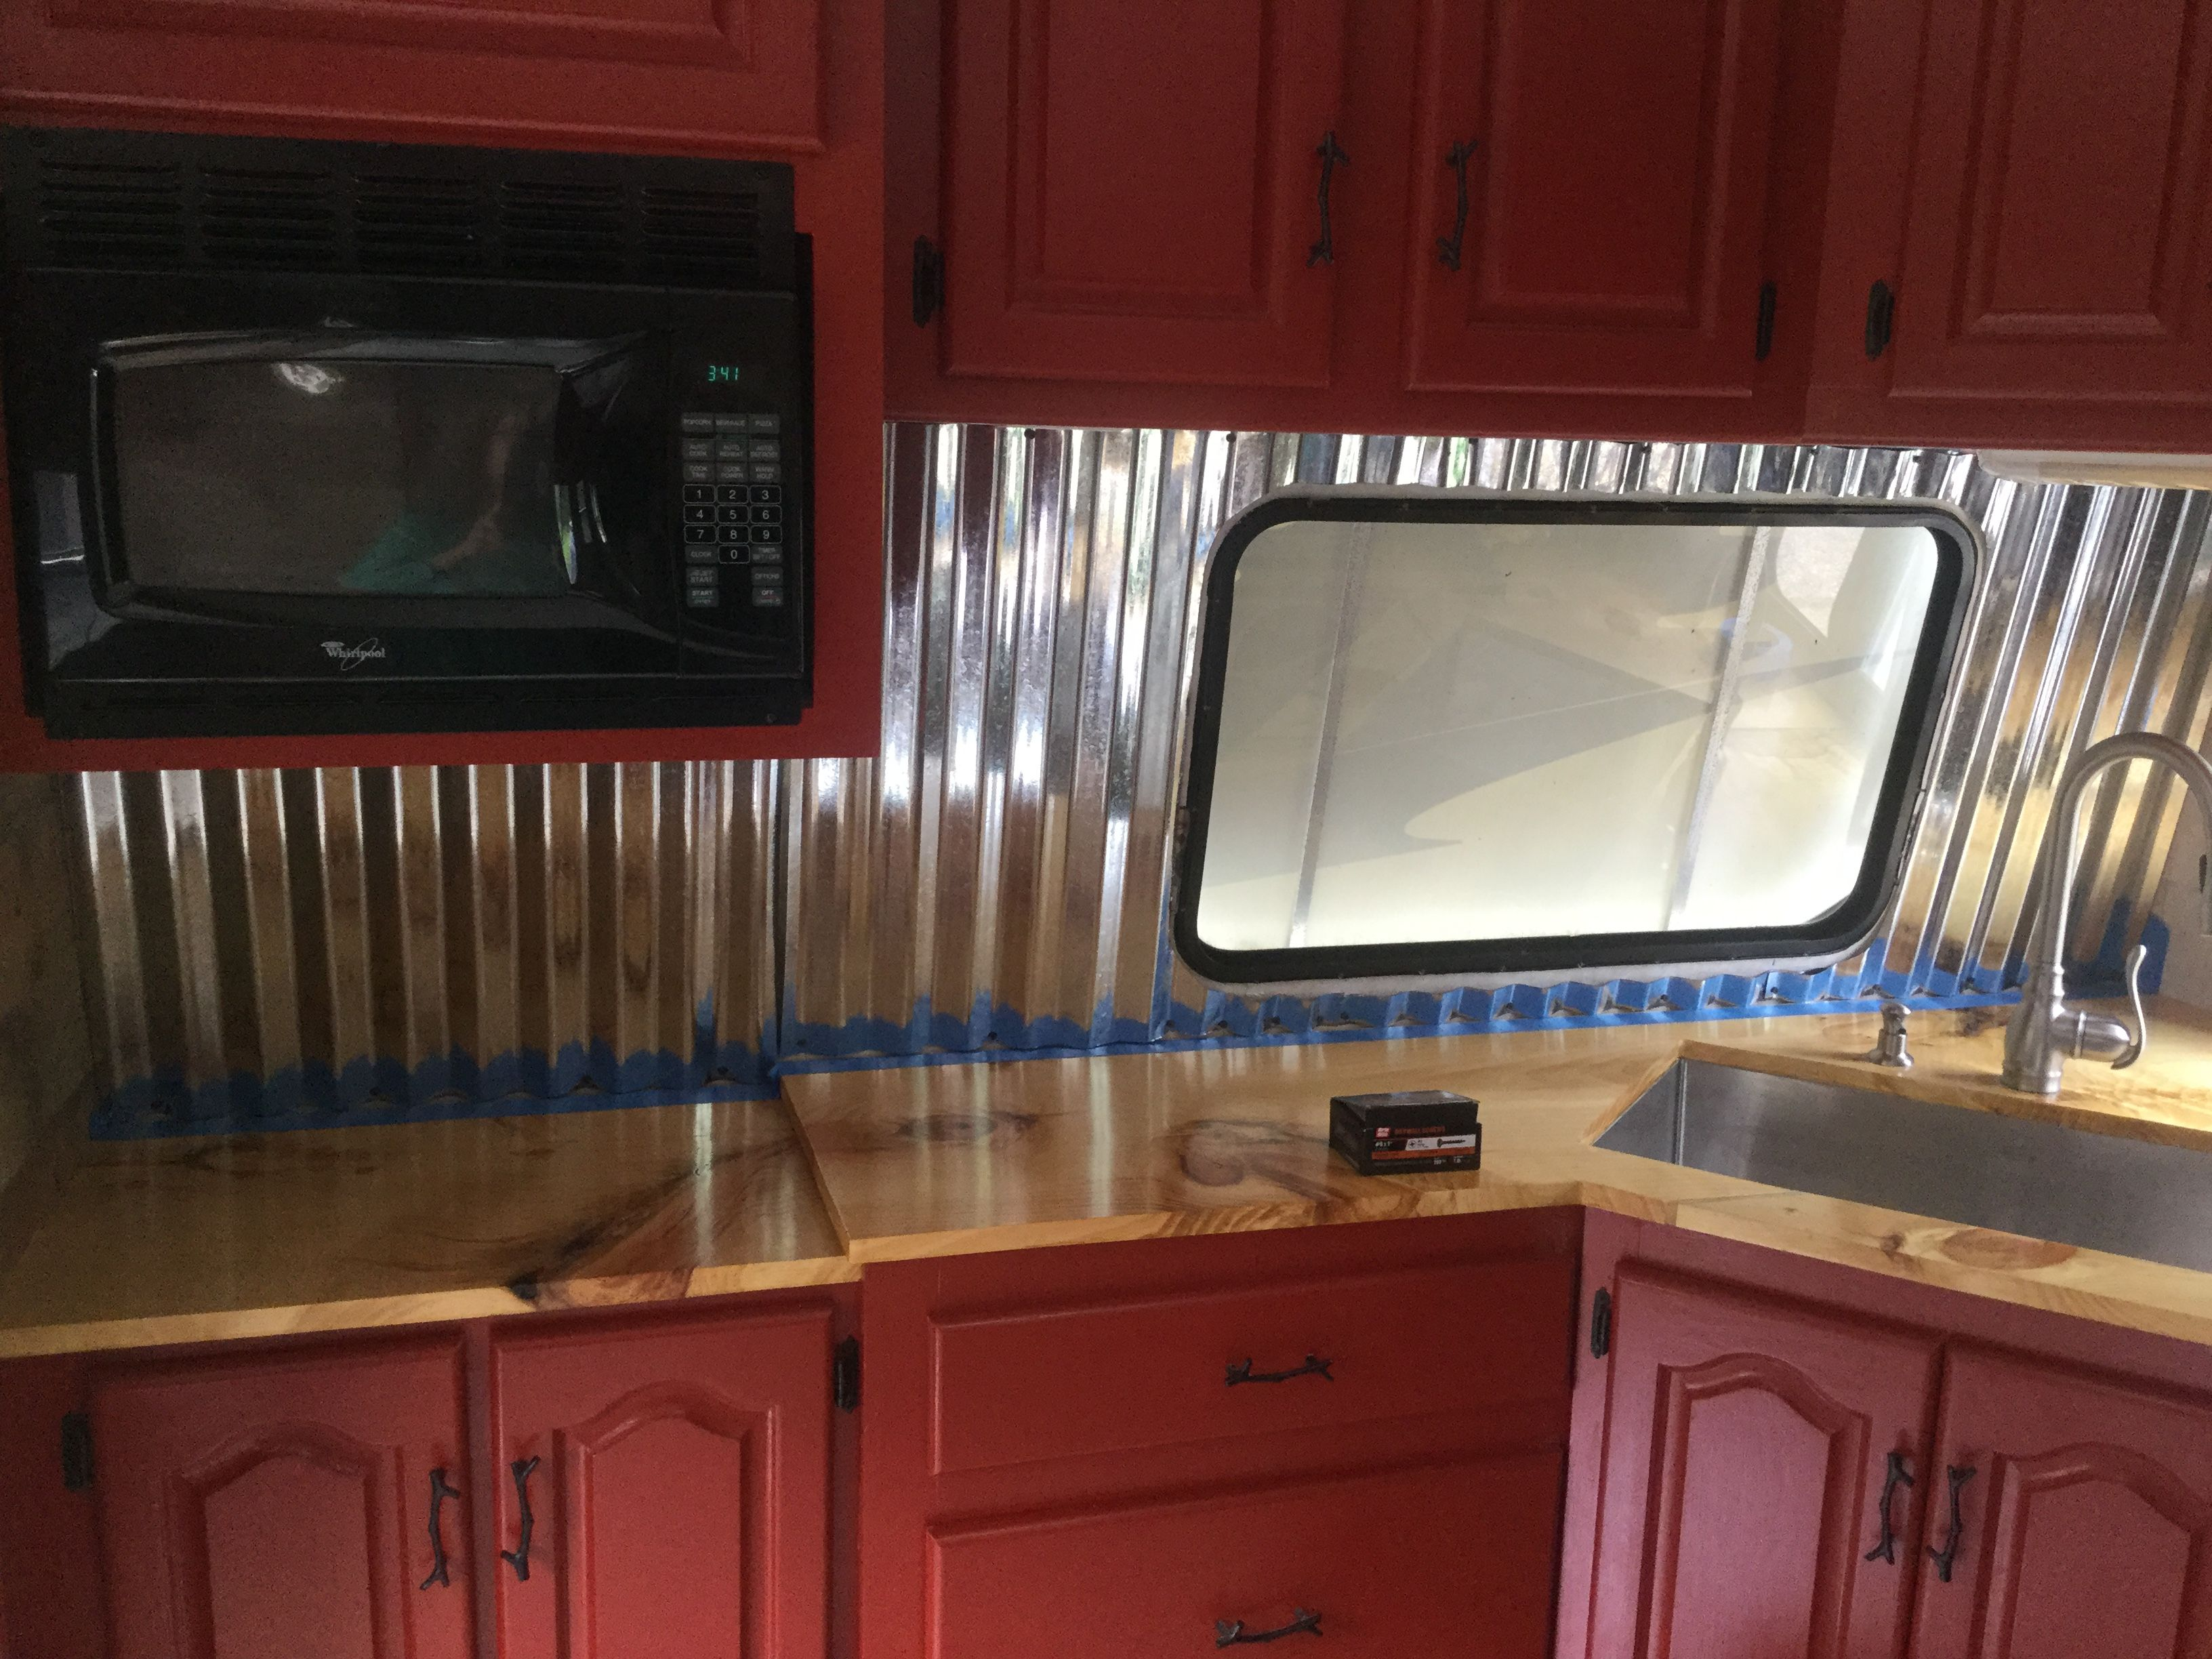 Corrugated Tin Roofing For The Back Splash Corrugated Tin Tin Roof Backsplash